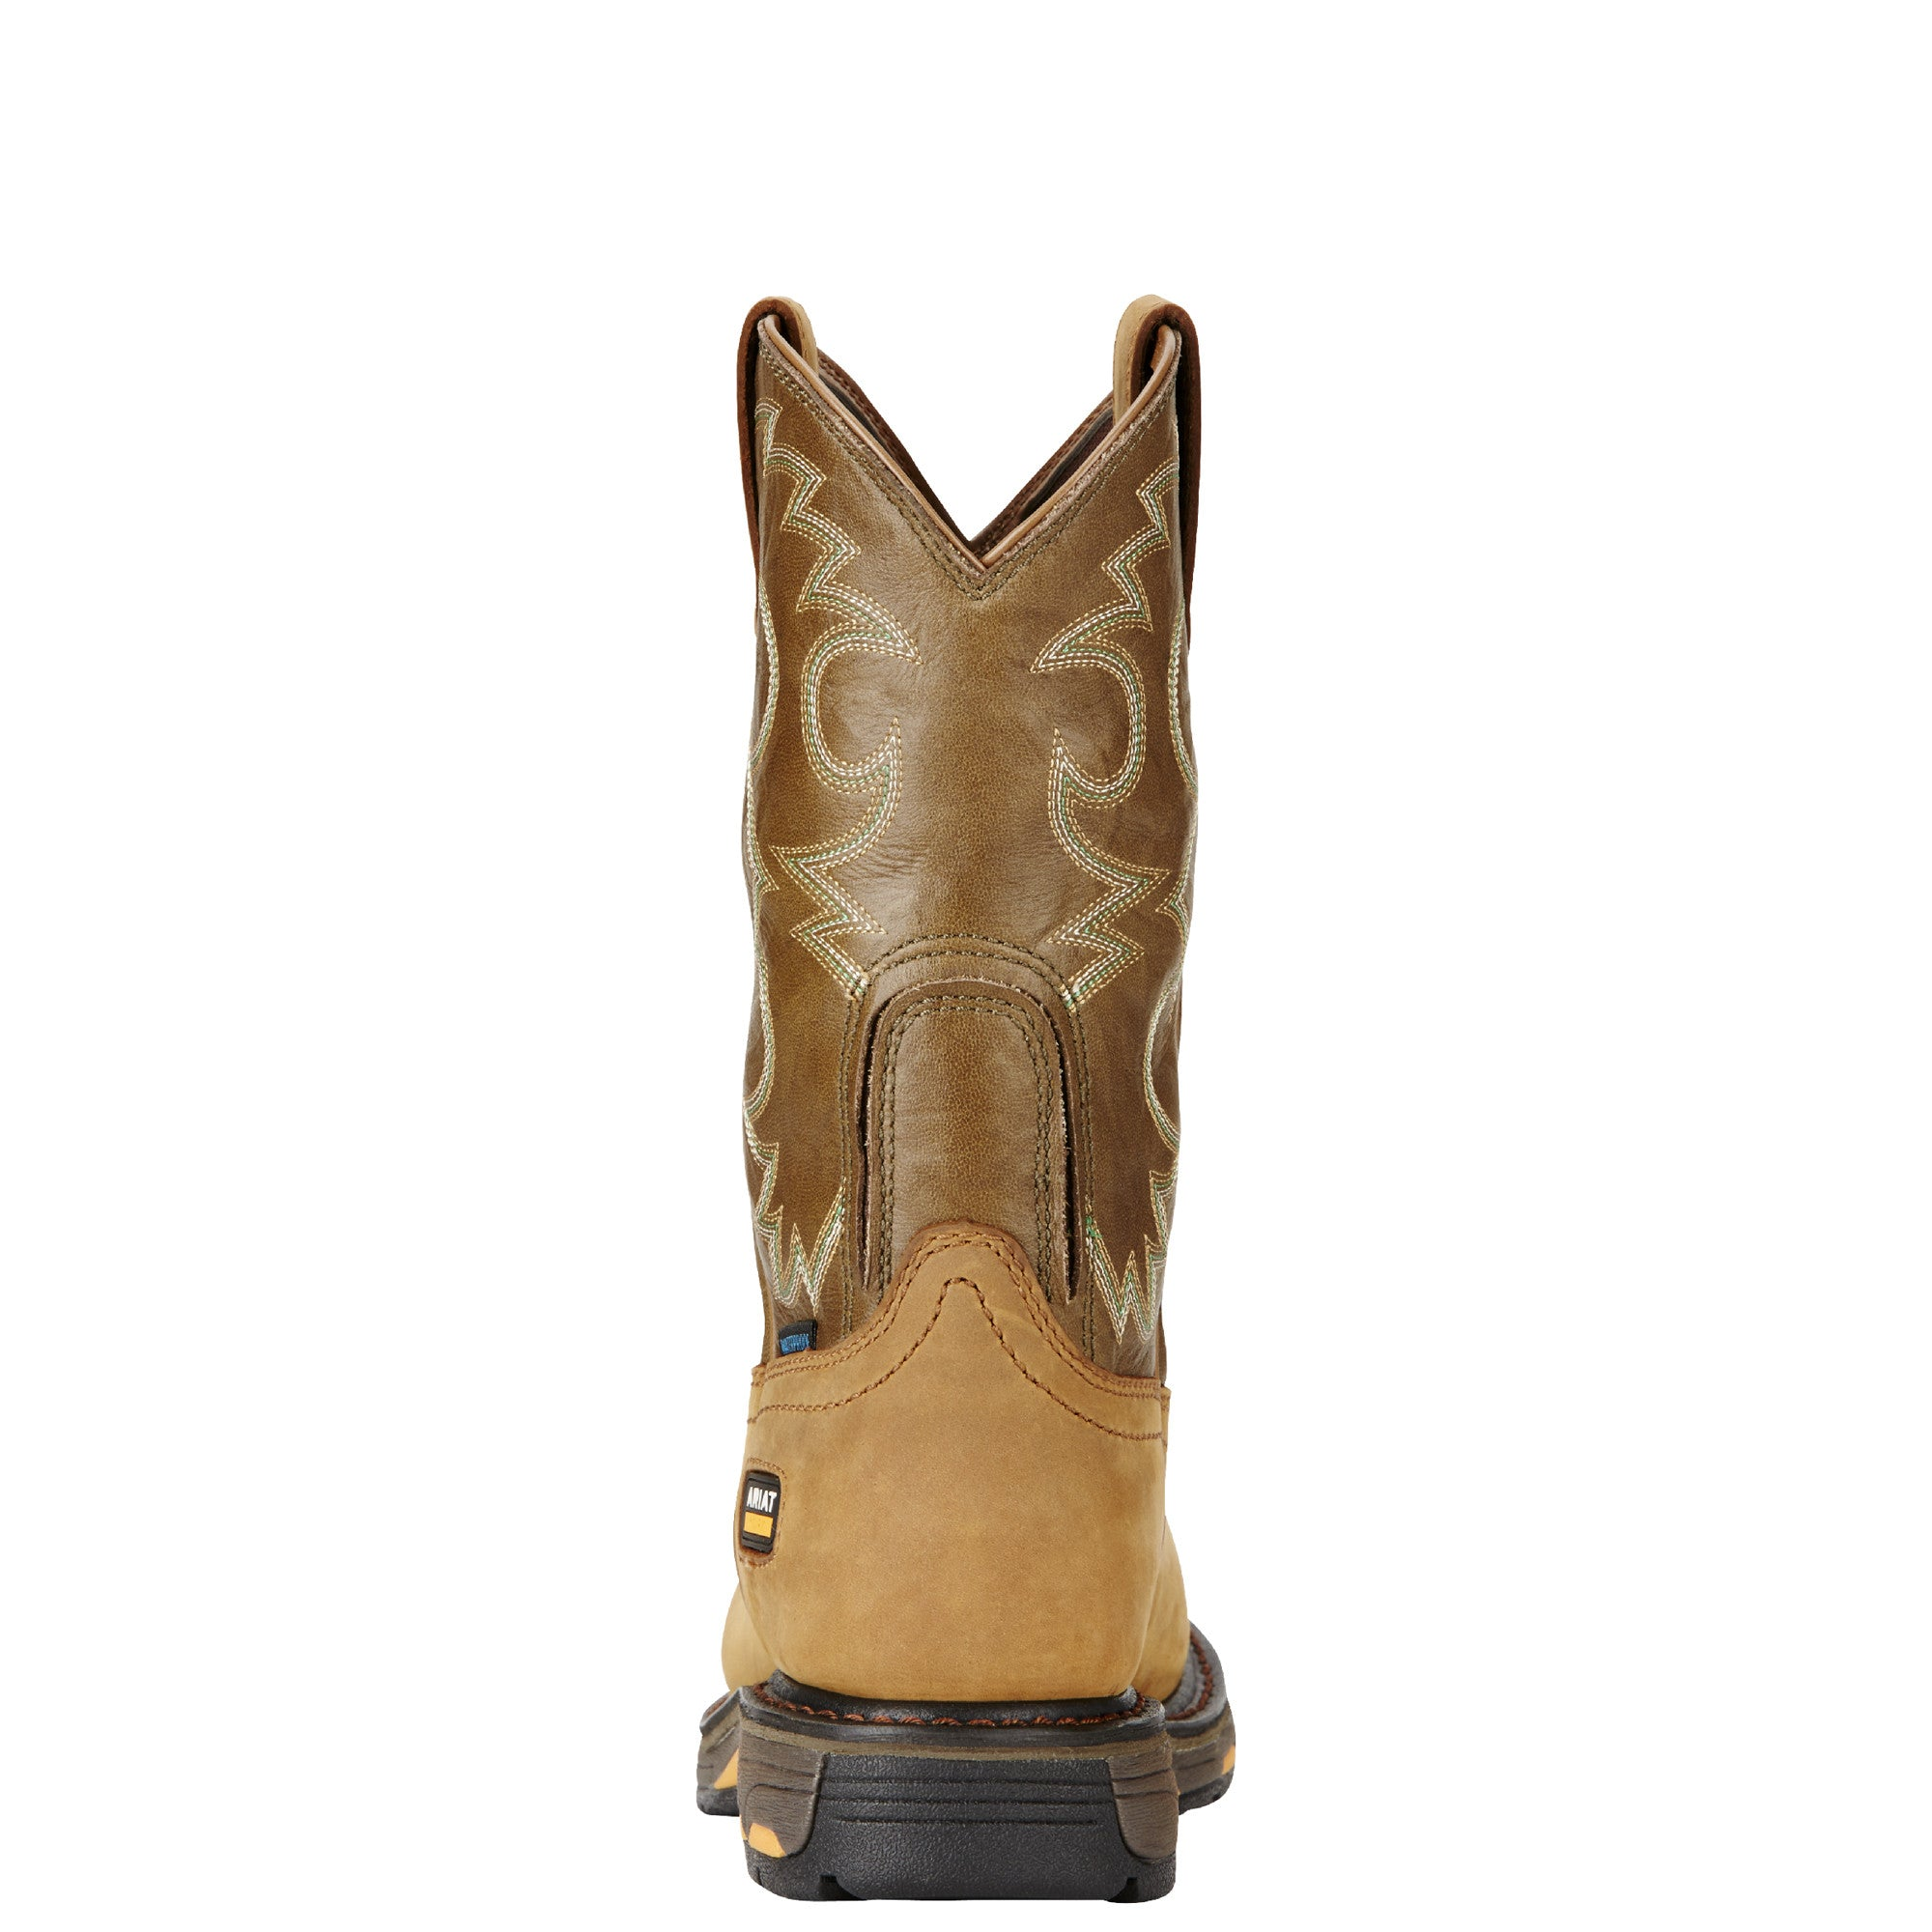 cbee5c4b705be Women's Ariat WorkHog Composite Toe Waterproof Work Boot #10018578 ...